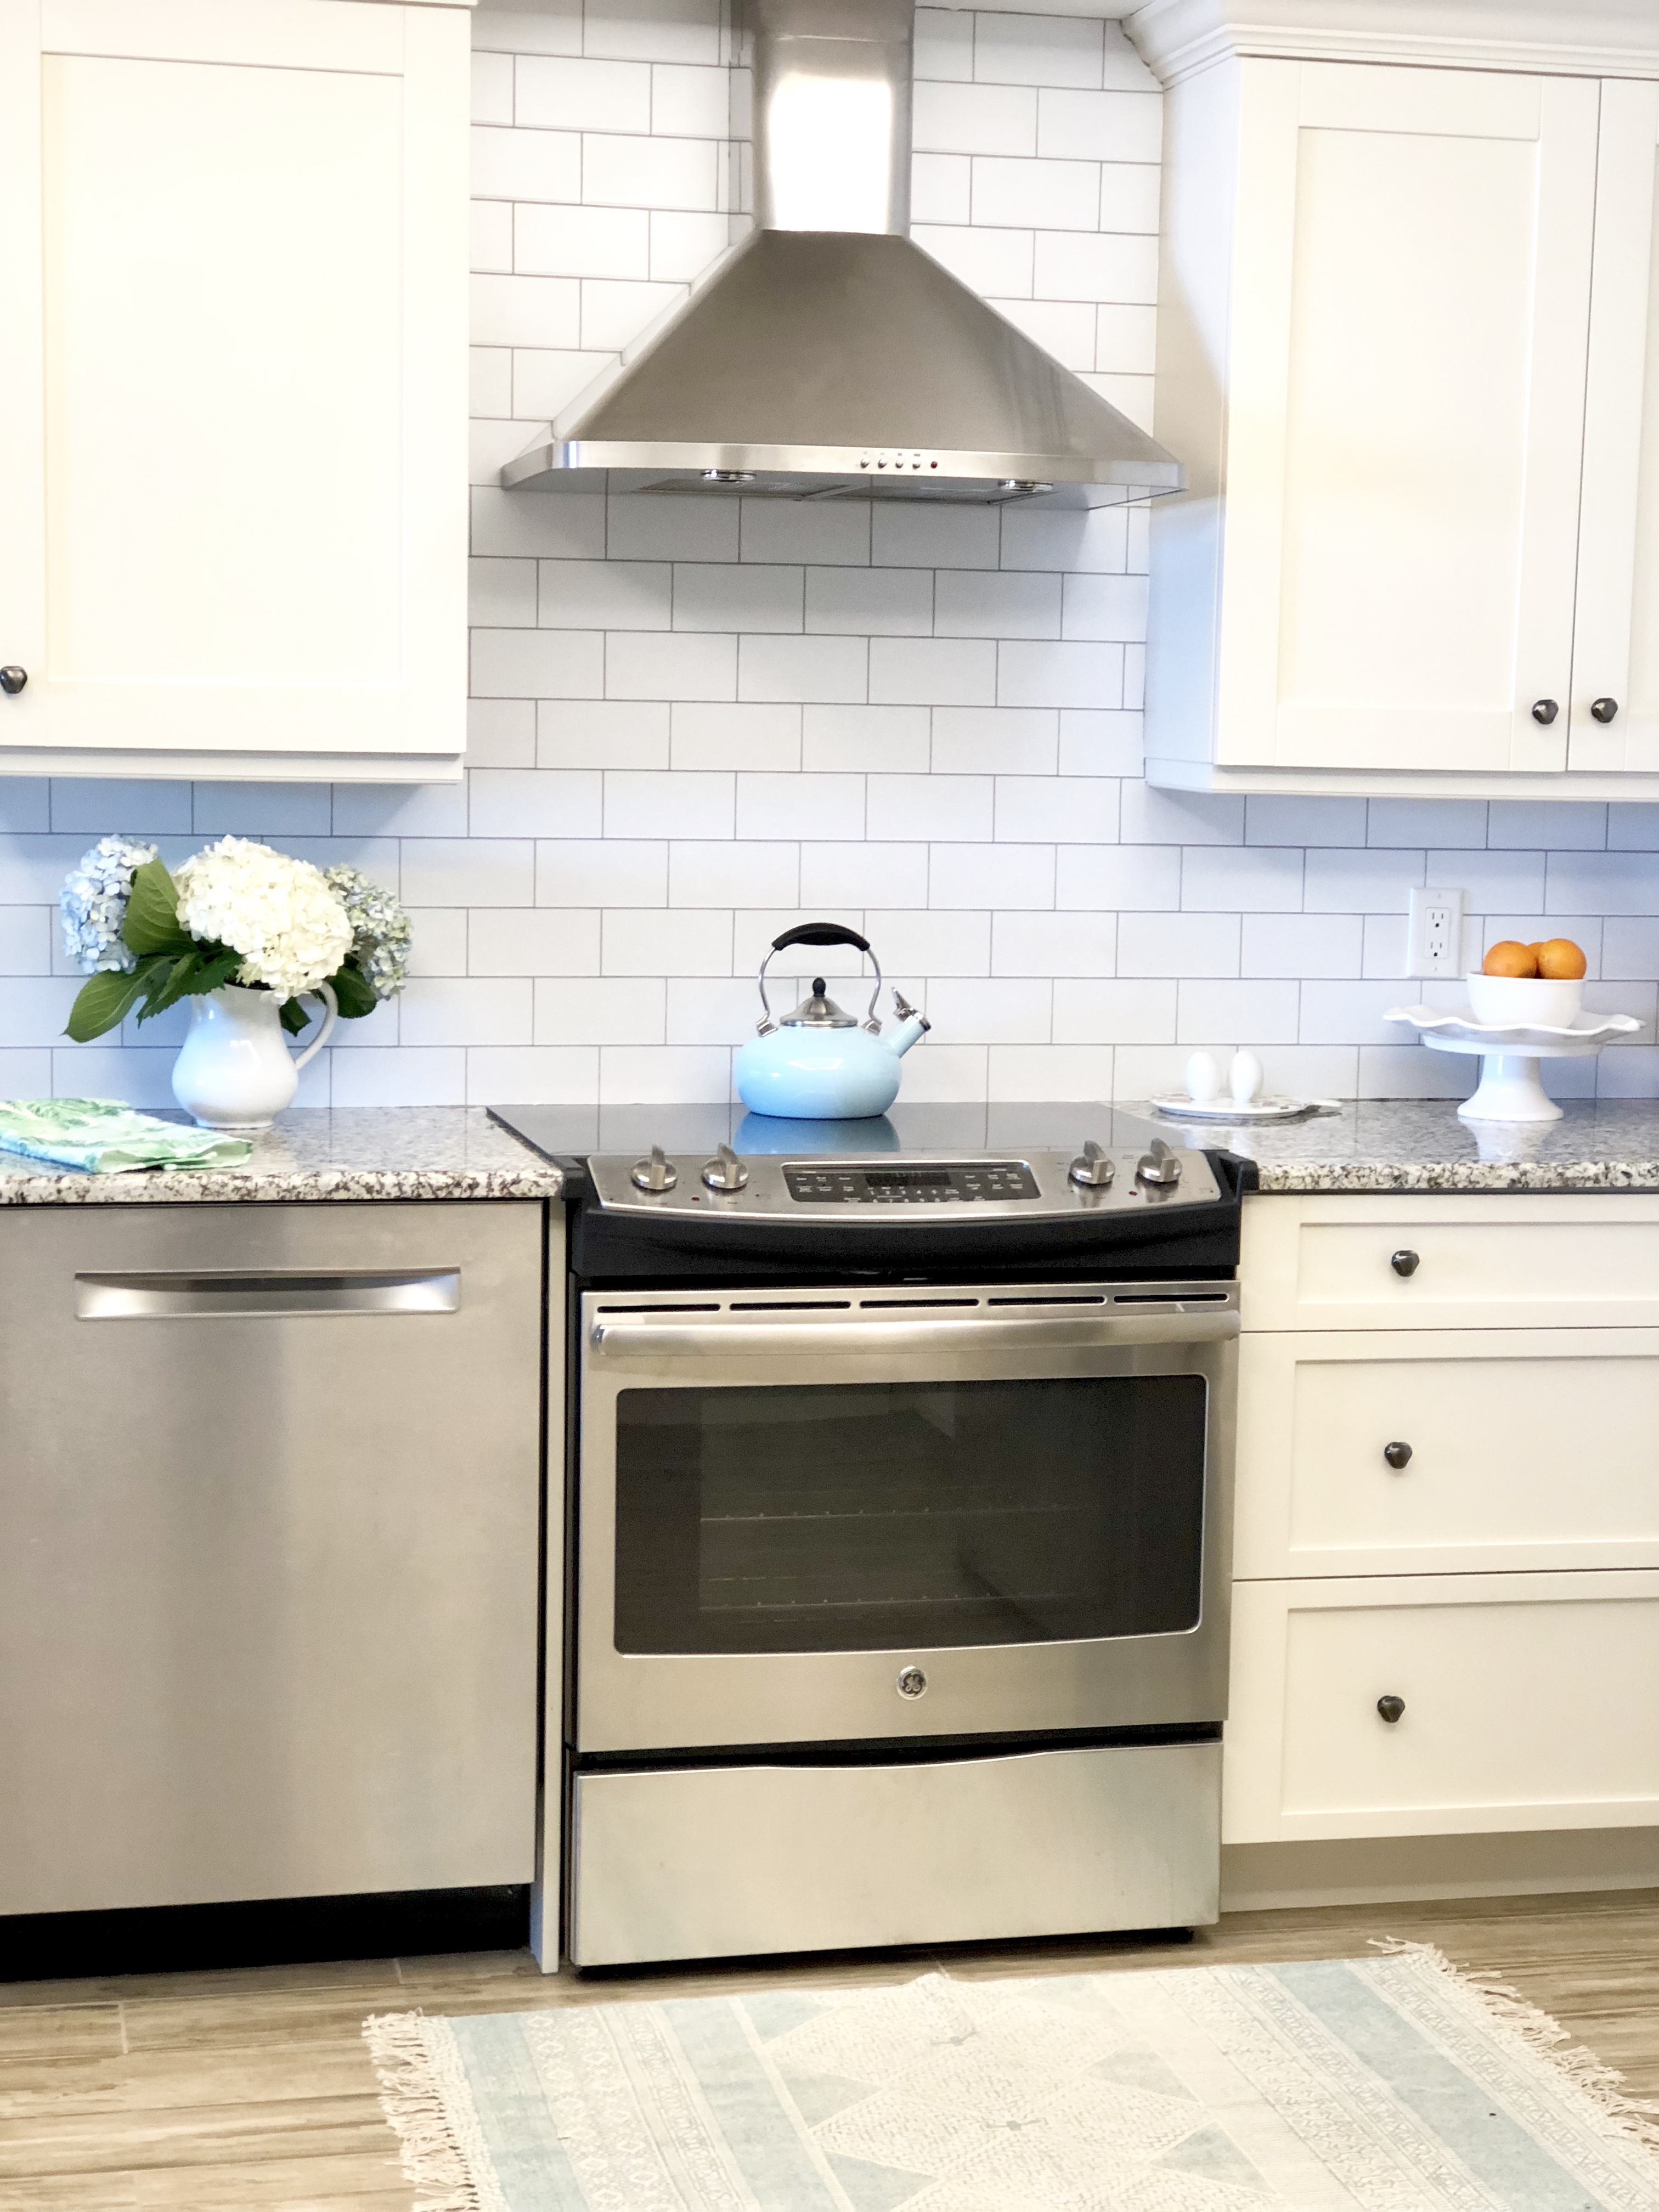 Every Who Comes In Here Thinks It Is Real Subway Tile Has Brightened Up The Kitchen So Much And For Under 100 We Got A Fresh Clean Updated Look